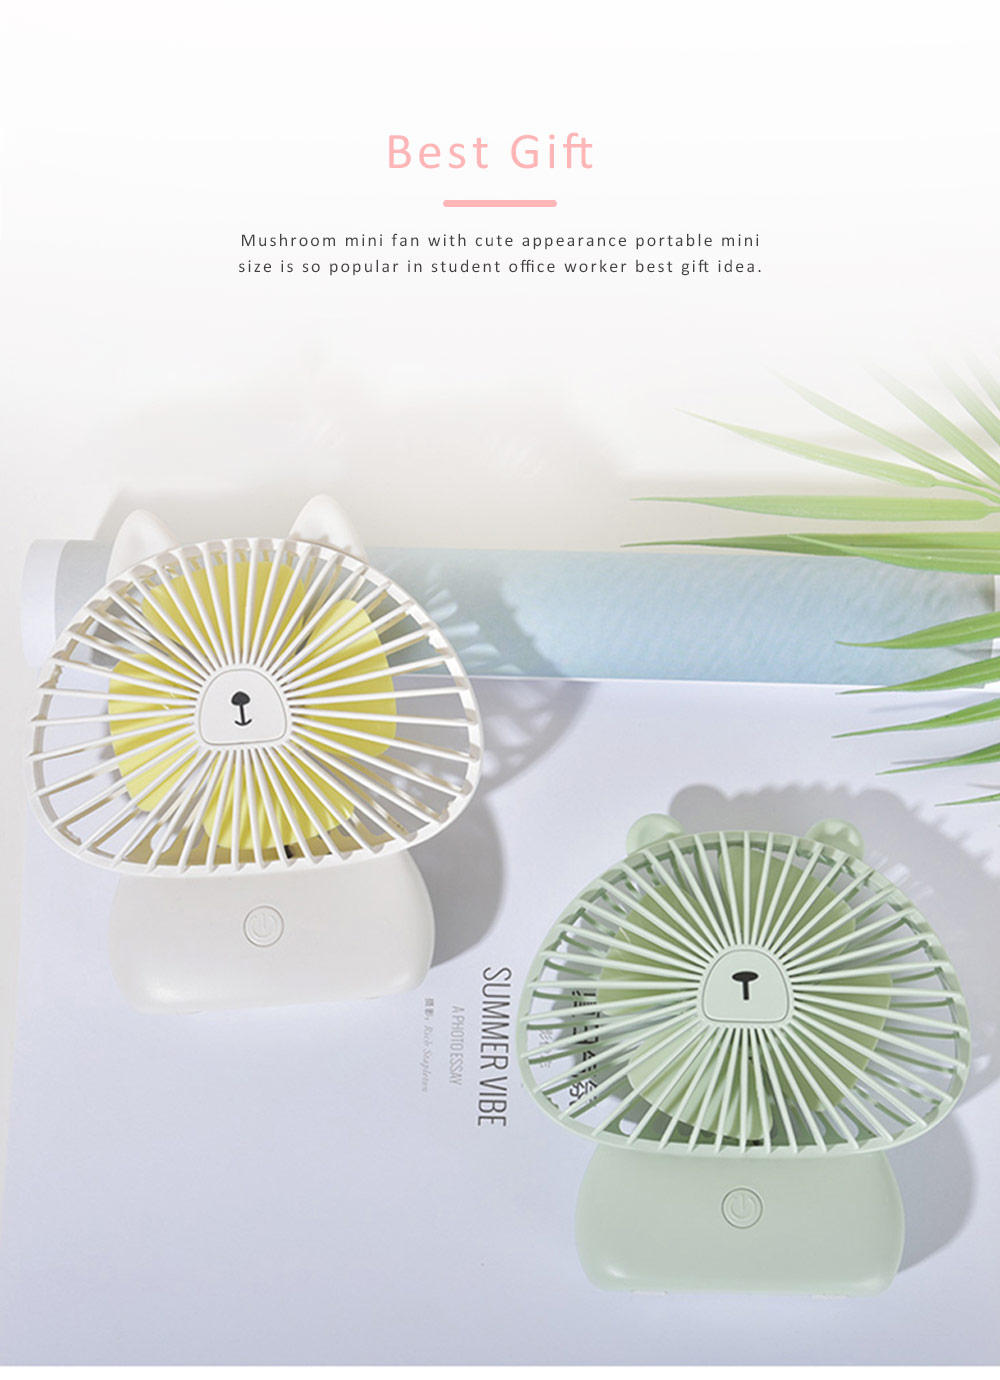 Portable Desk USB Fan Mini Stroller Table Fan with USB Rechargeable Battery Small Size 4 Speeds for Home Office and Dorm-White 5